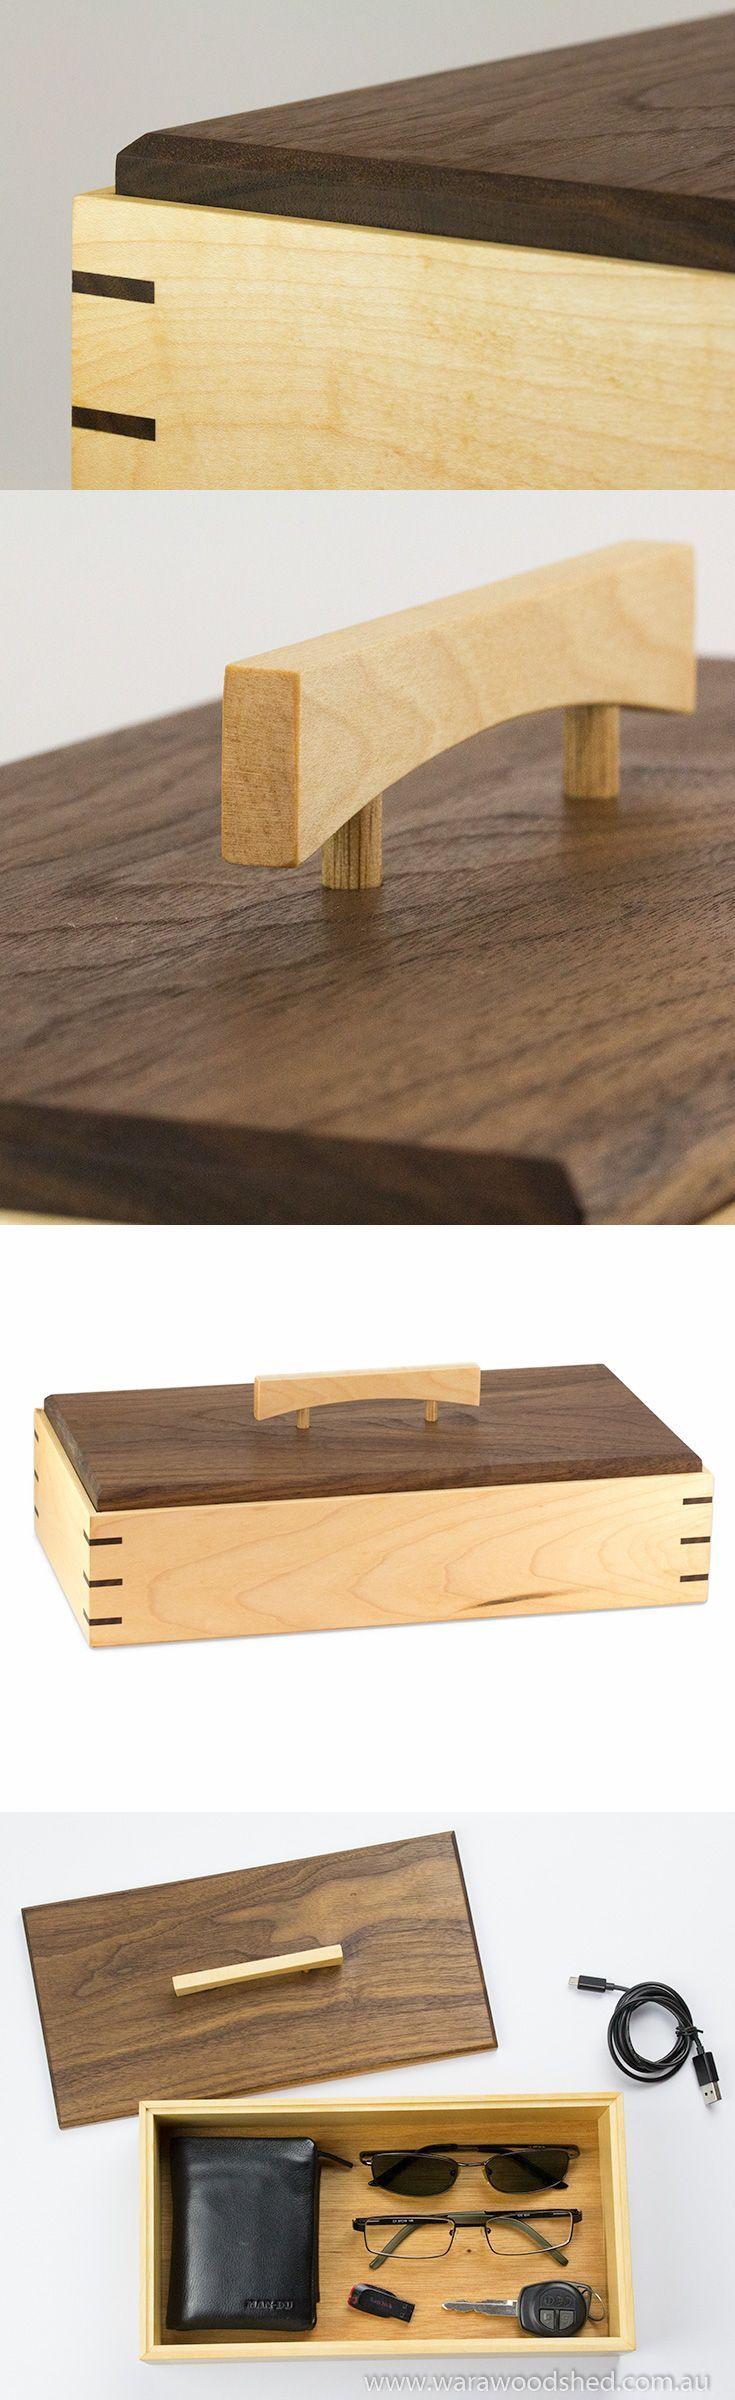 An elegant wooden keepsake box made from Rock Maple and Black Walnut.